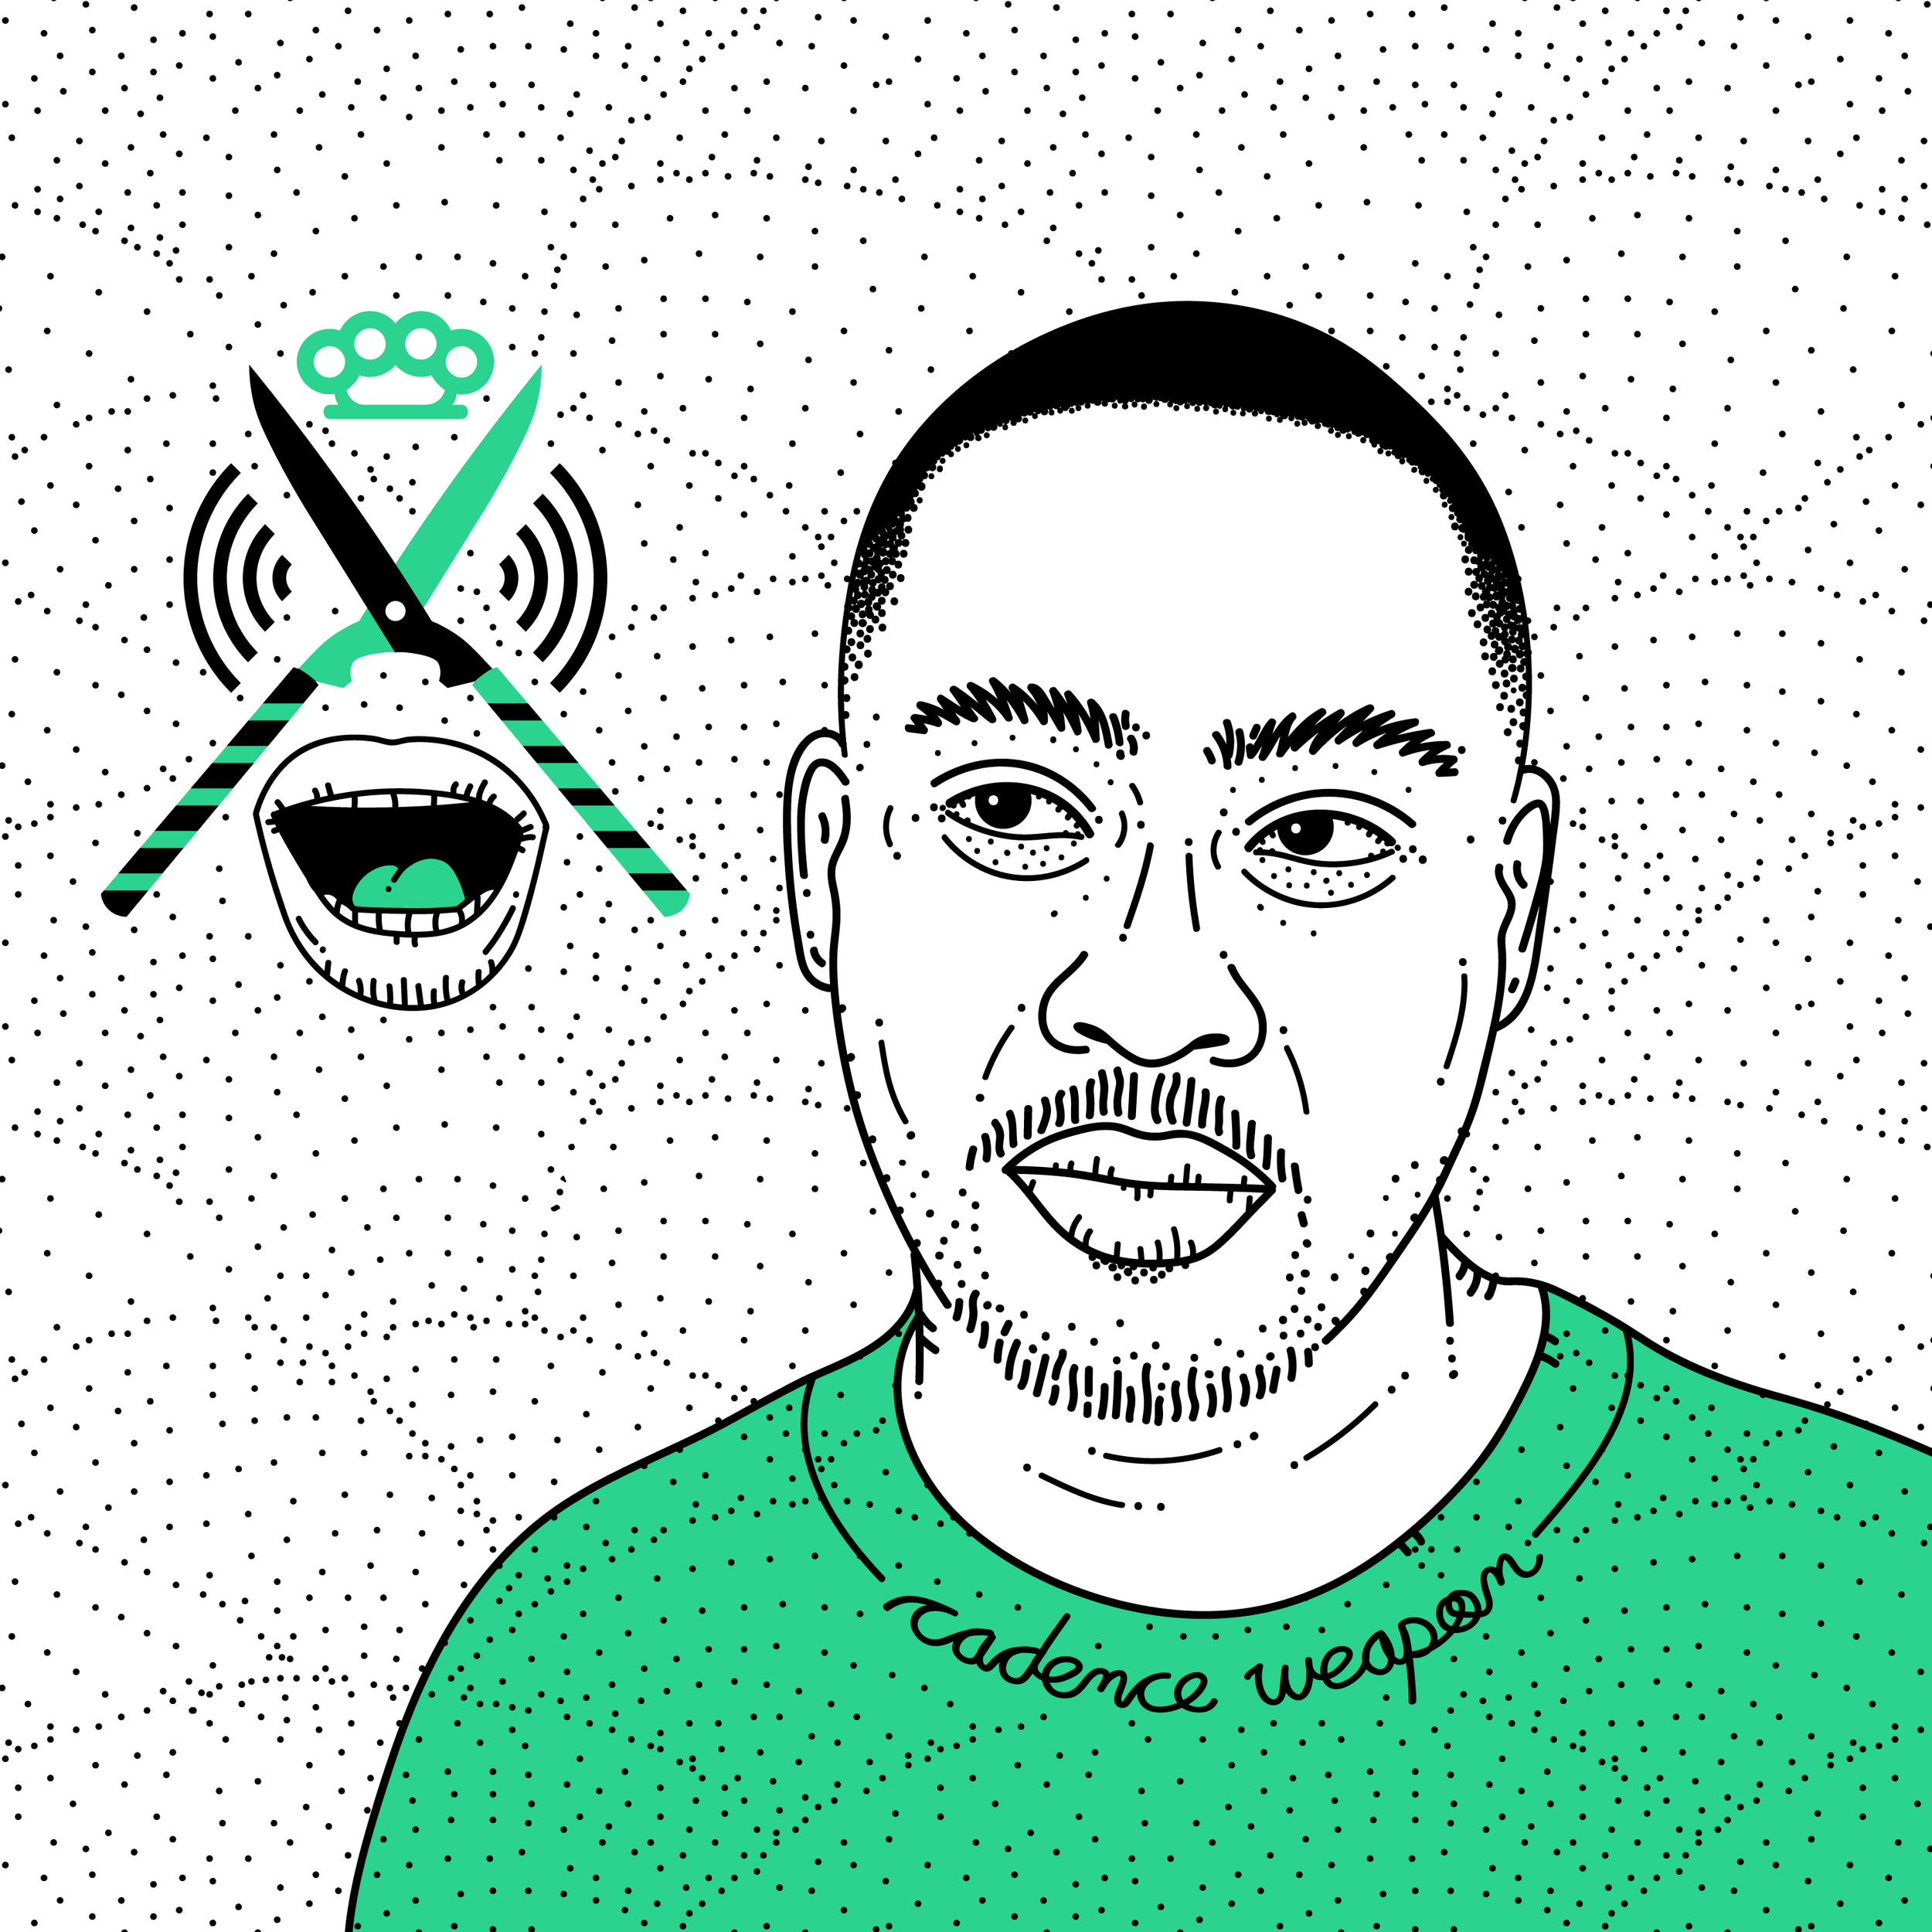 Episode 31 - Cadence Weapon -